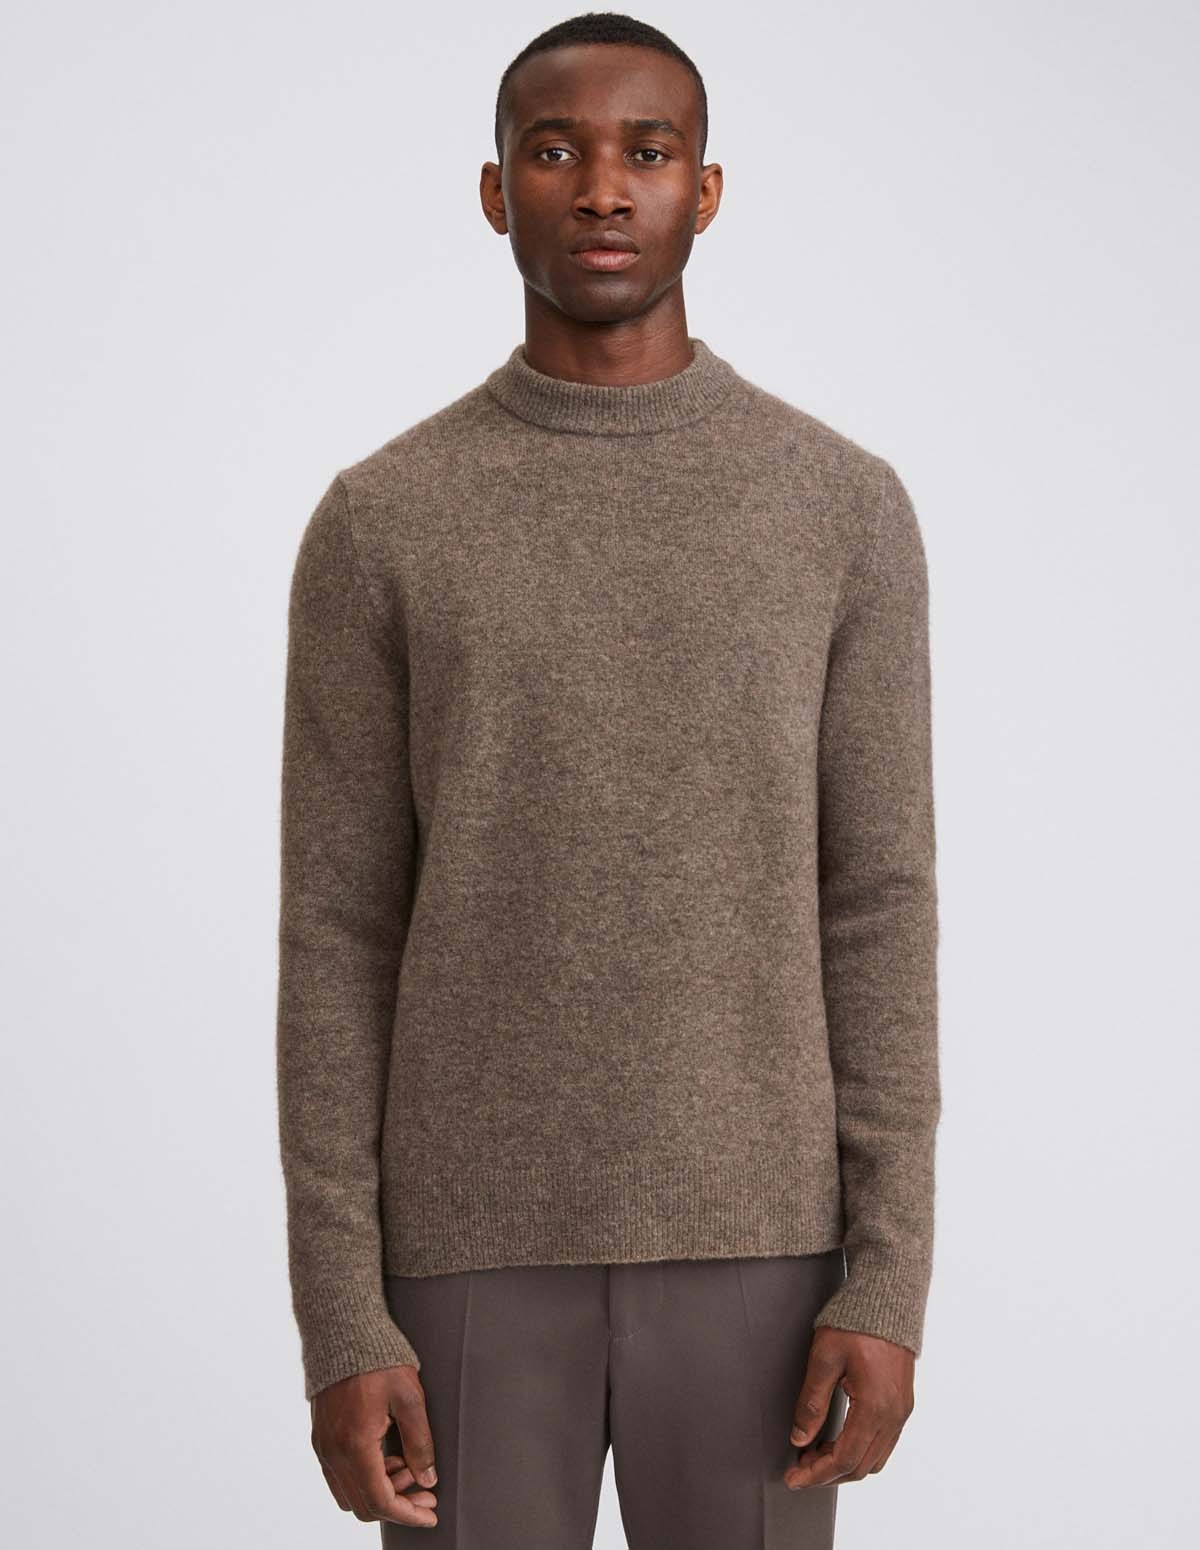 Yark R Neck Sweater - DARK TAUPE